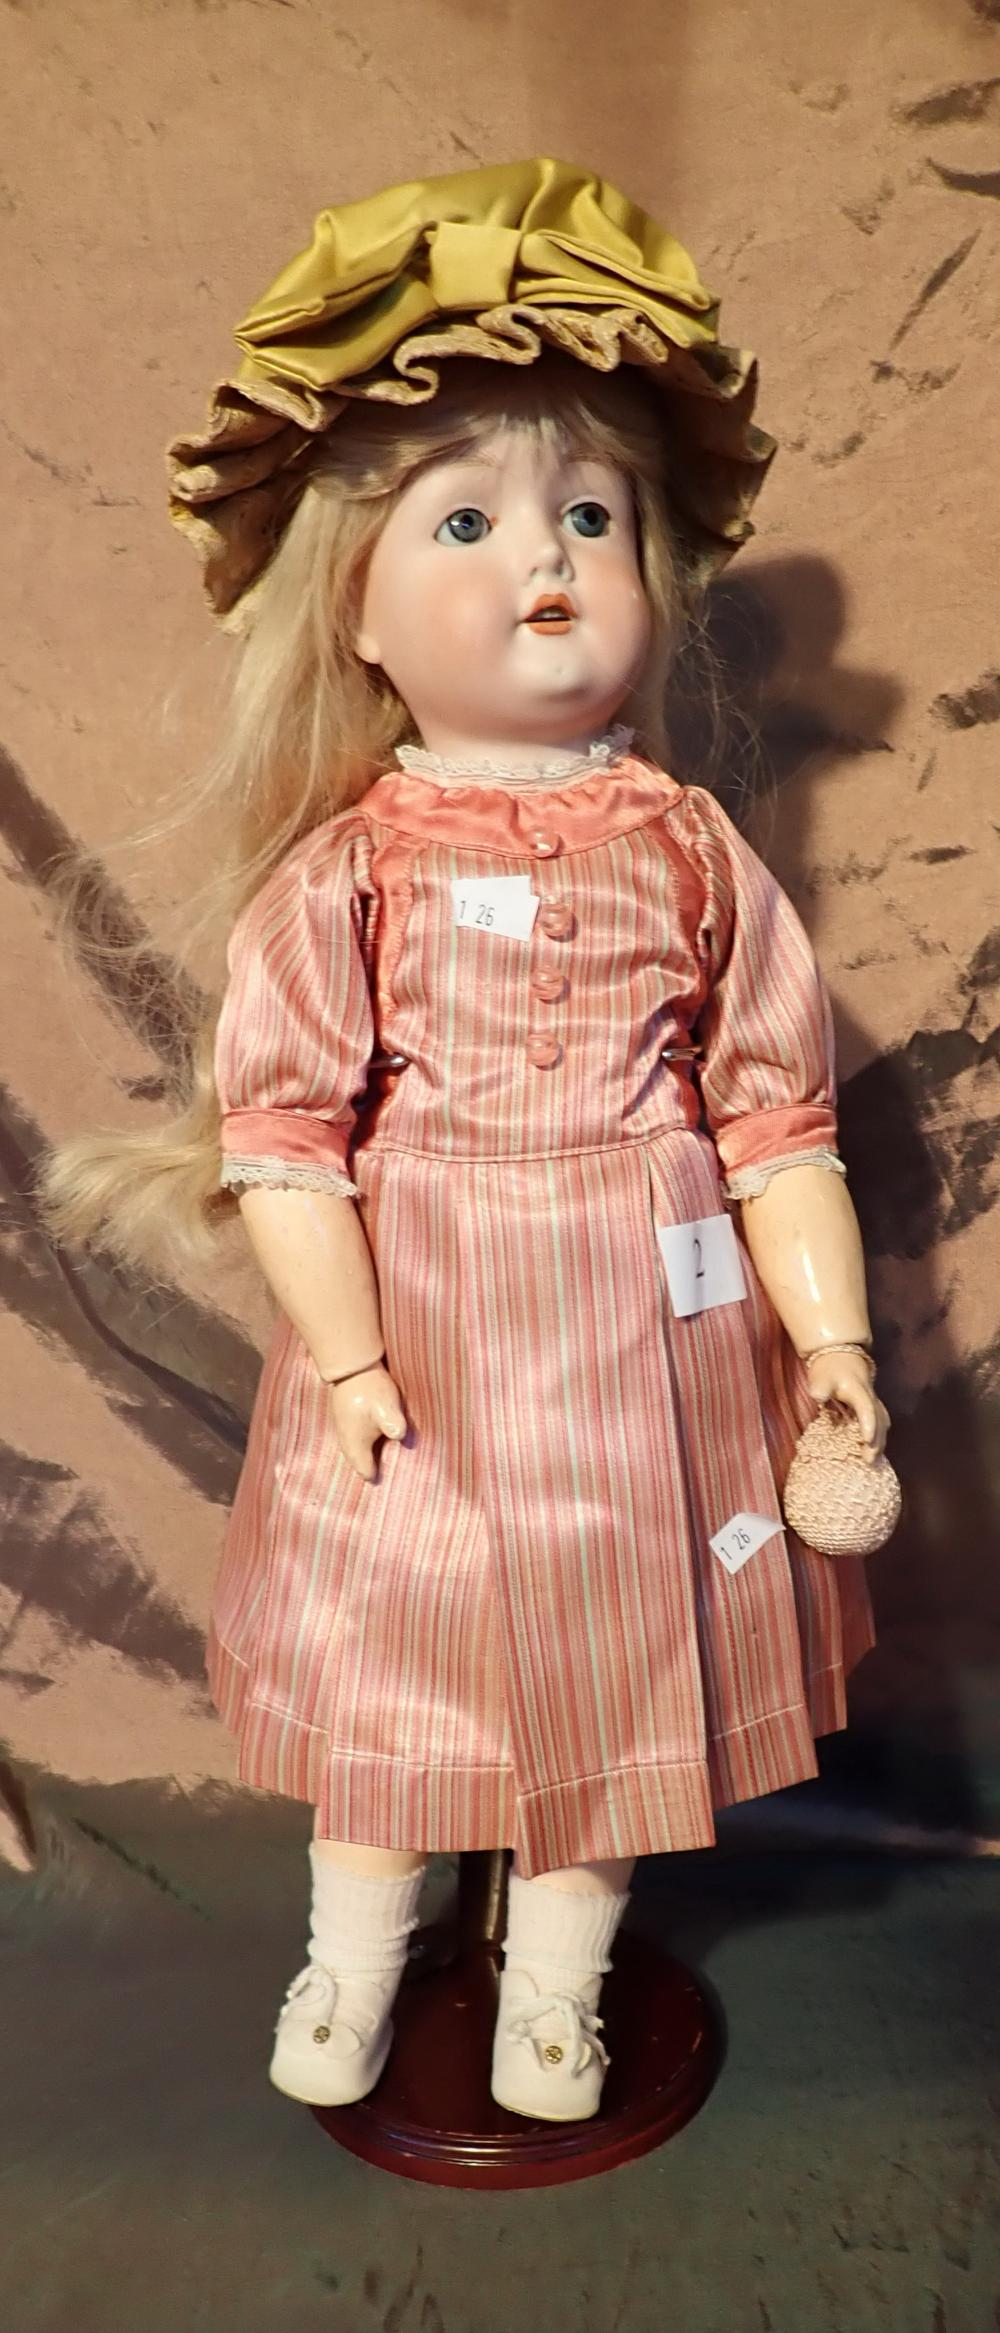 """21"""" CM BERGMANN WALTERSHOUSEN 1916 GERMANY 5 DOLL - OVERALL GOOD CONDITION WITH PETTICOAT AND PANTALOONS - NICELY DRESSED"""